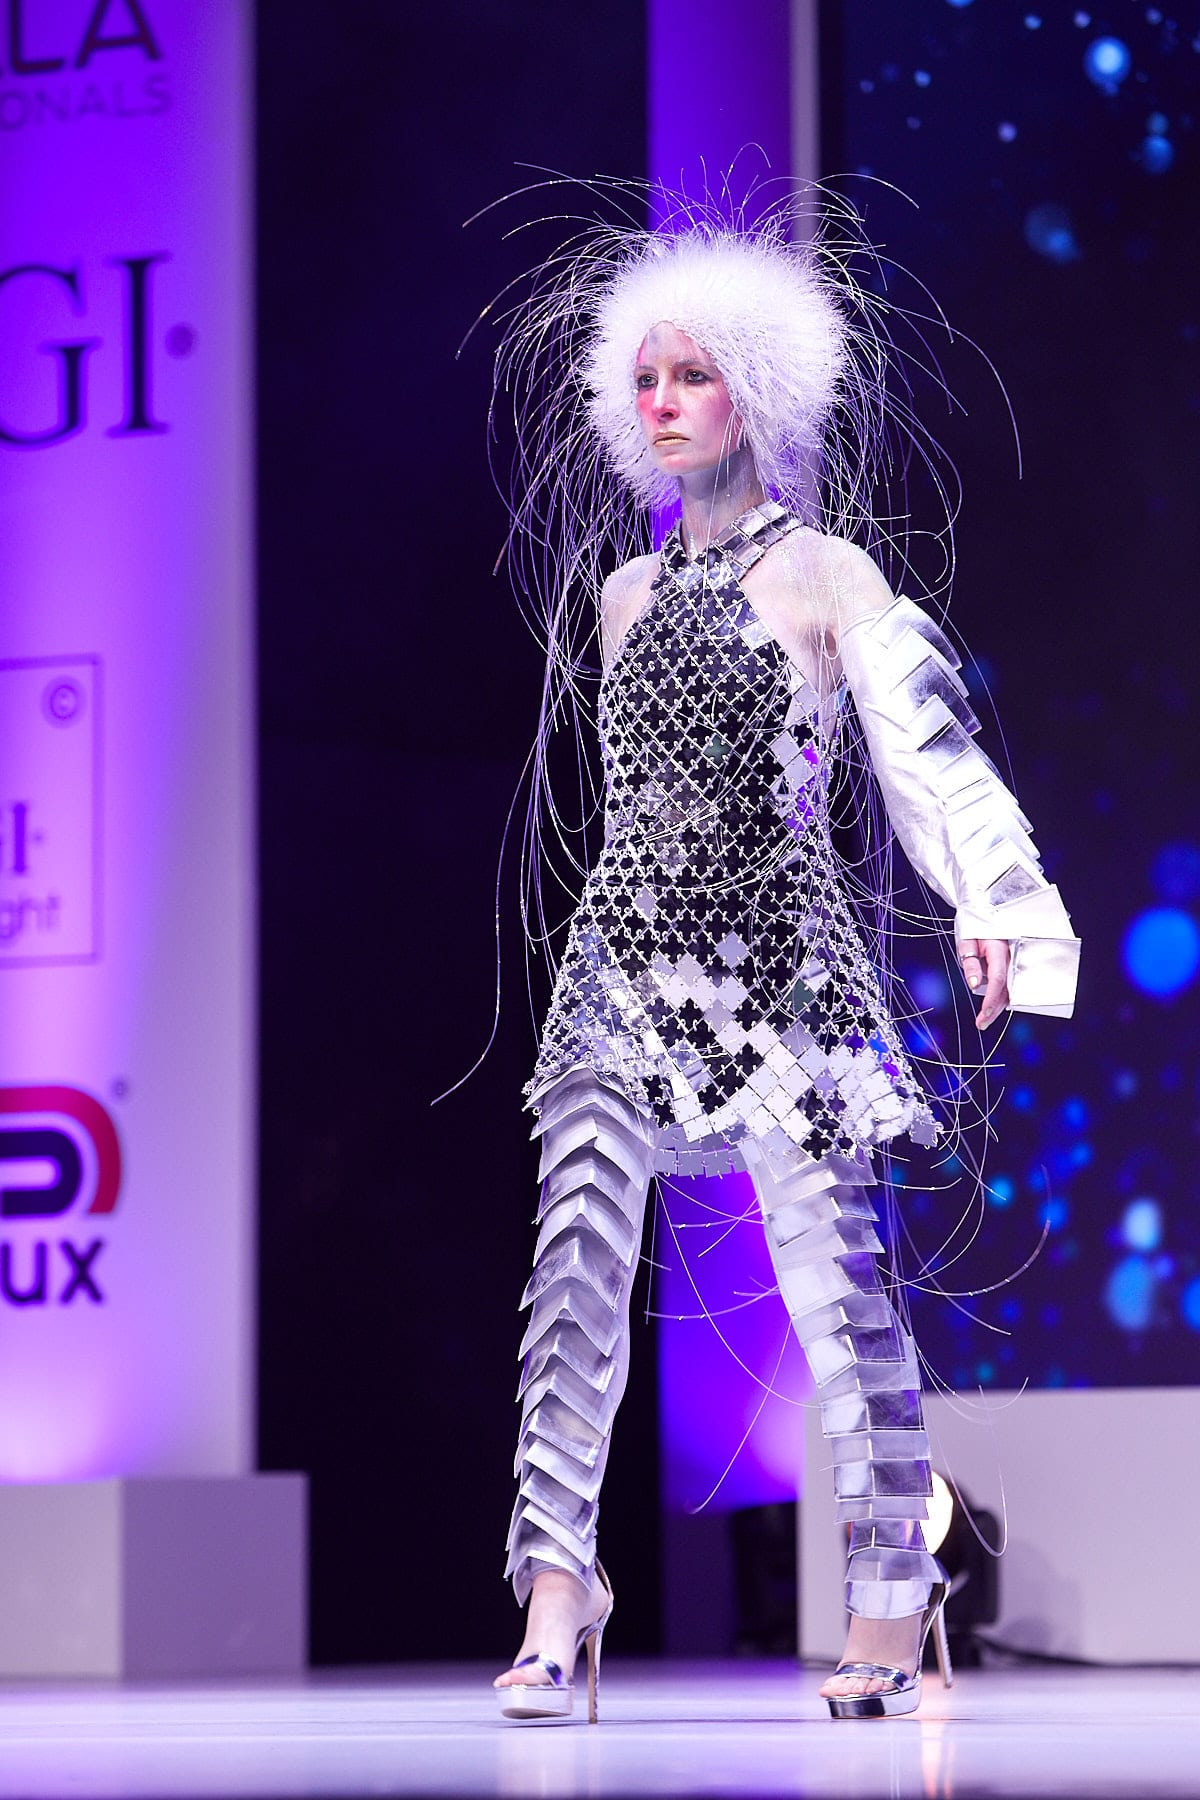 Alternative Hair Show London 2019